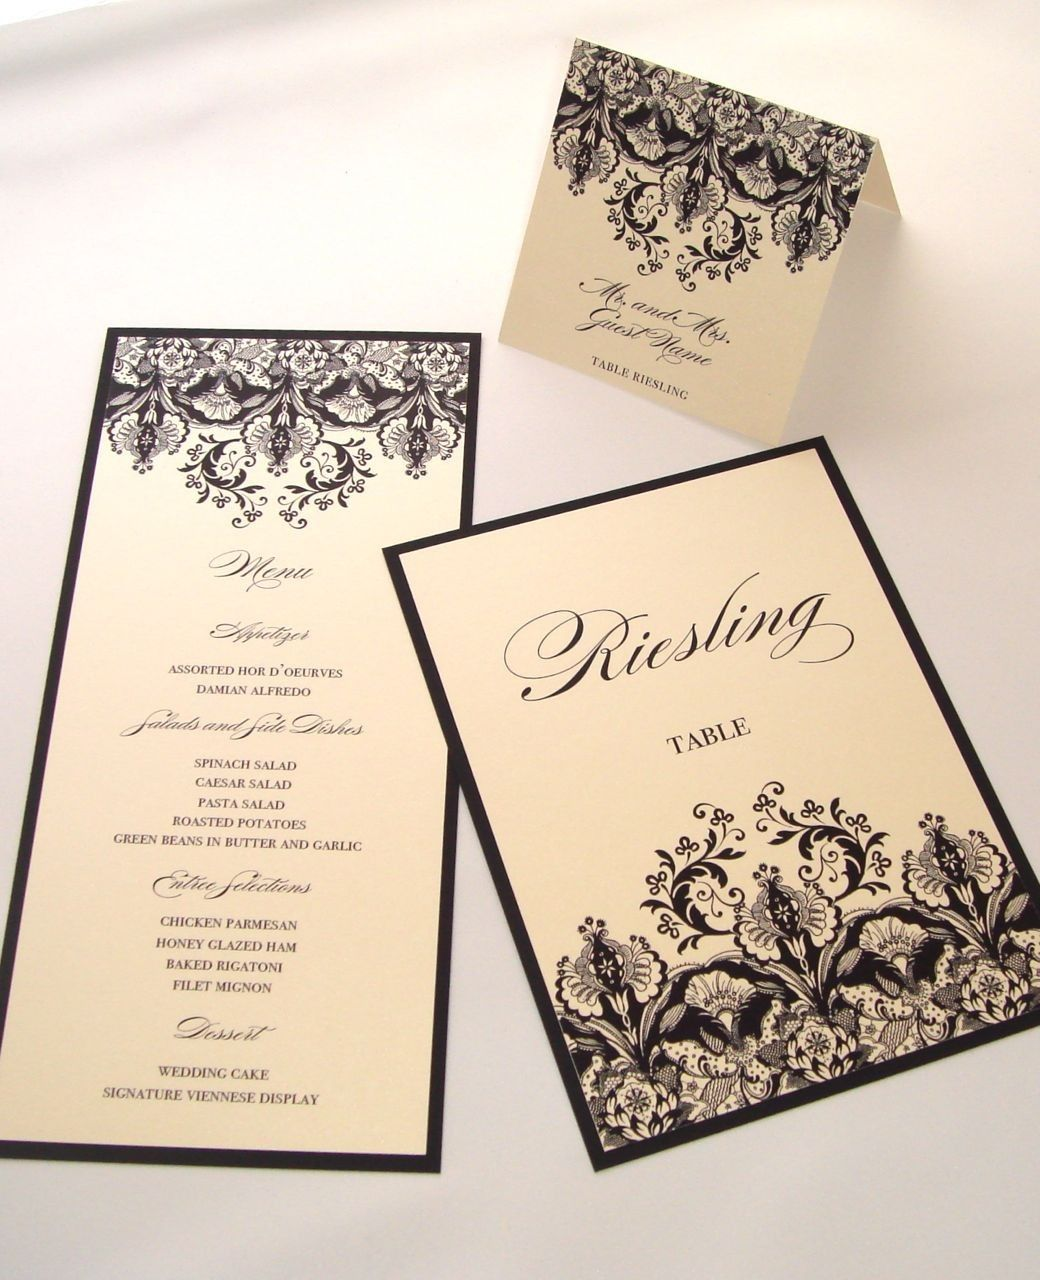 Christina floral damask invitation sample black ivory cream christina floral damask invitation sample black ivory cream champagne metallic 500 via etsy stopboris